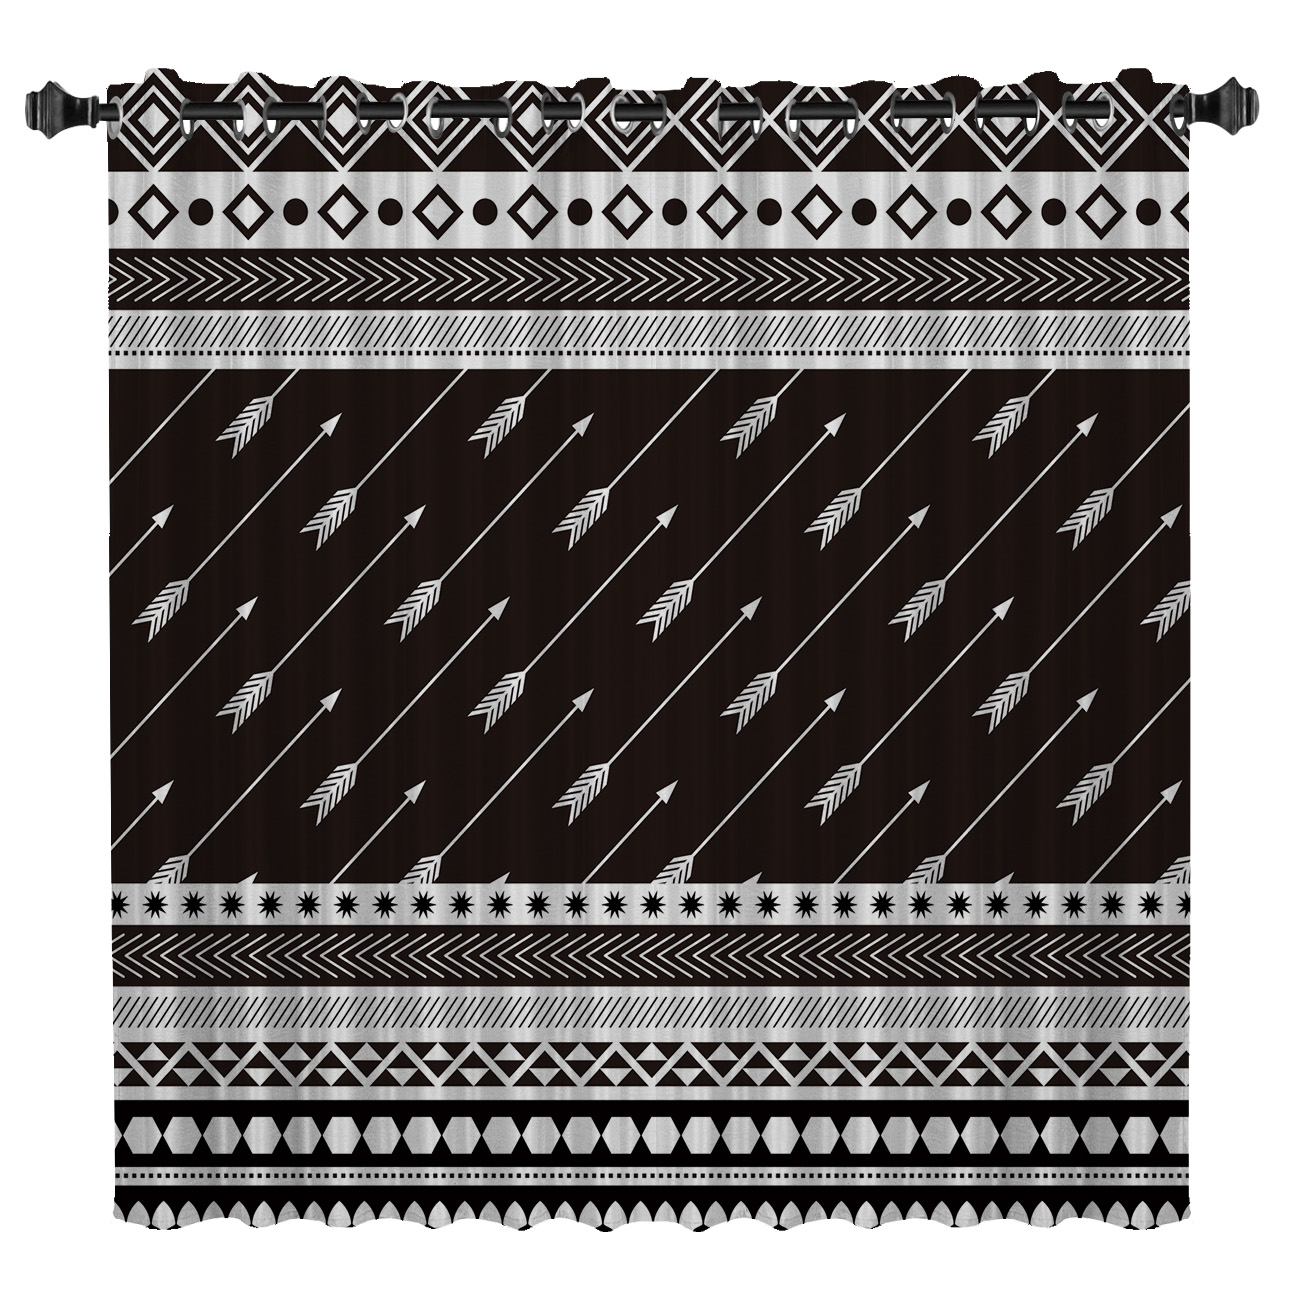 Aztec Arrowhead Room Curtains Large Window Curtain Rod Bathroom Bedroom Outdoor Drapes Fabric Print Kids Window Treatment Ideas